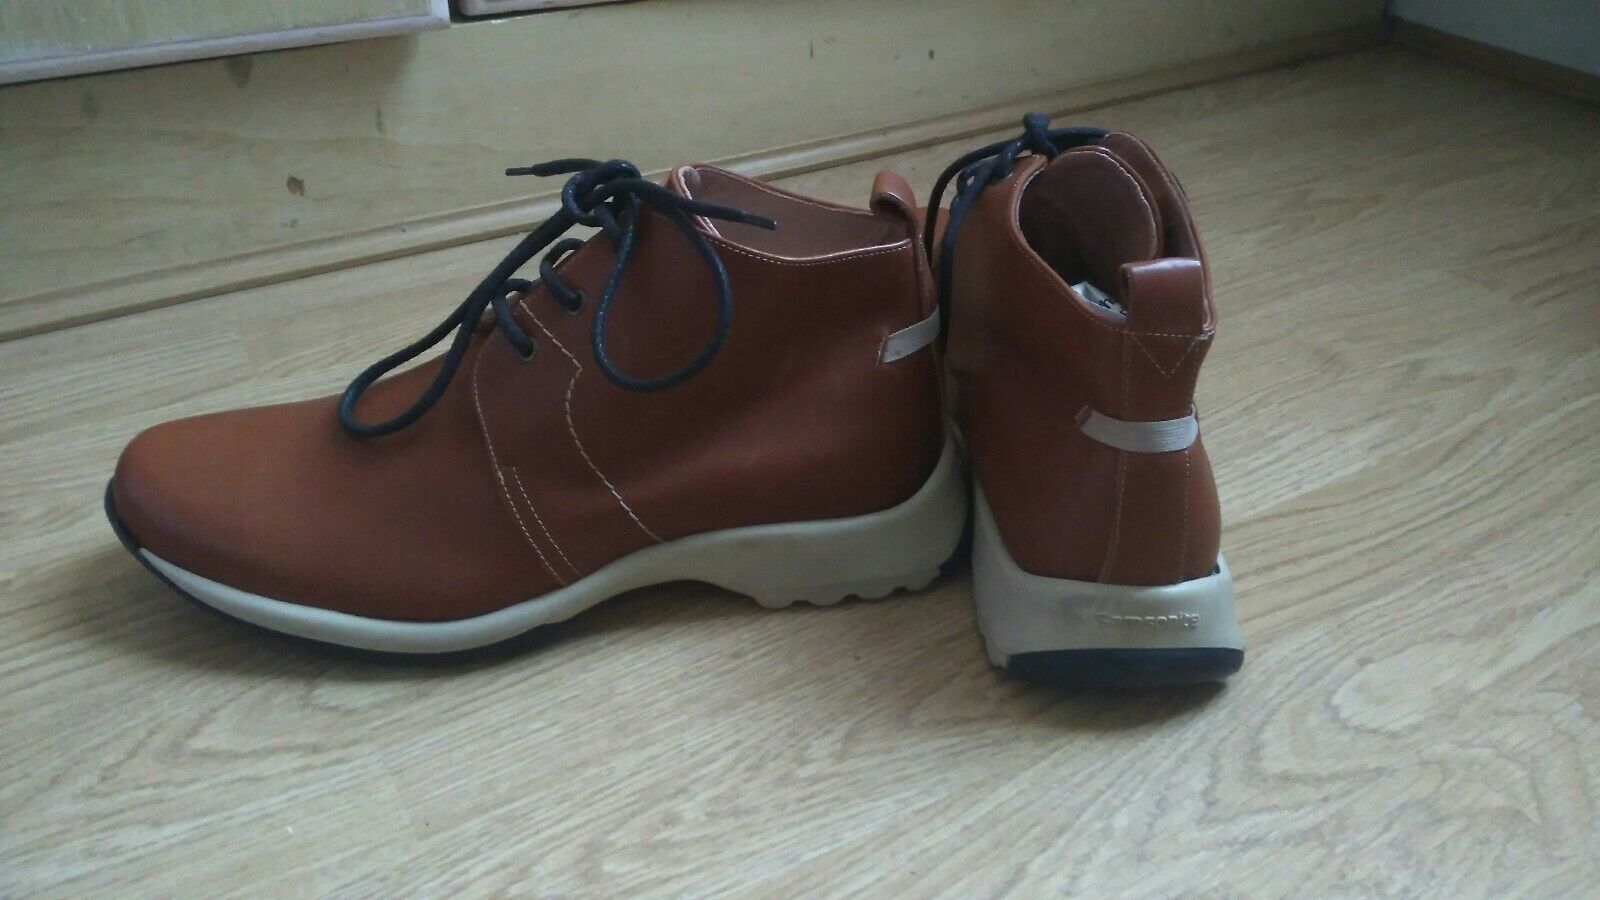 tan brown leather SAMSONITE size shoes. worn but in very good condition. size SAMSONITE 45 1d942f